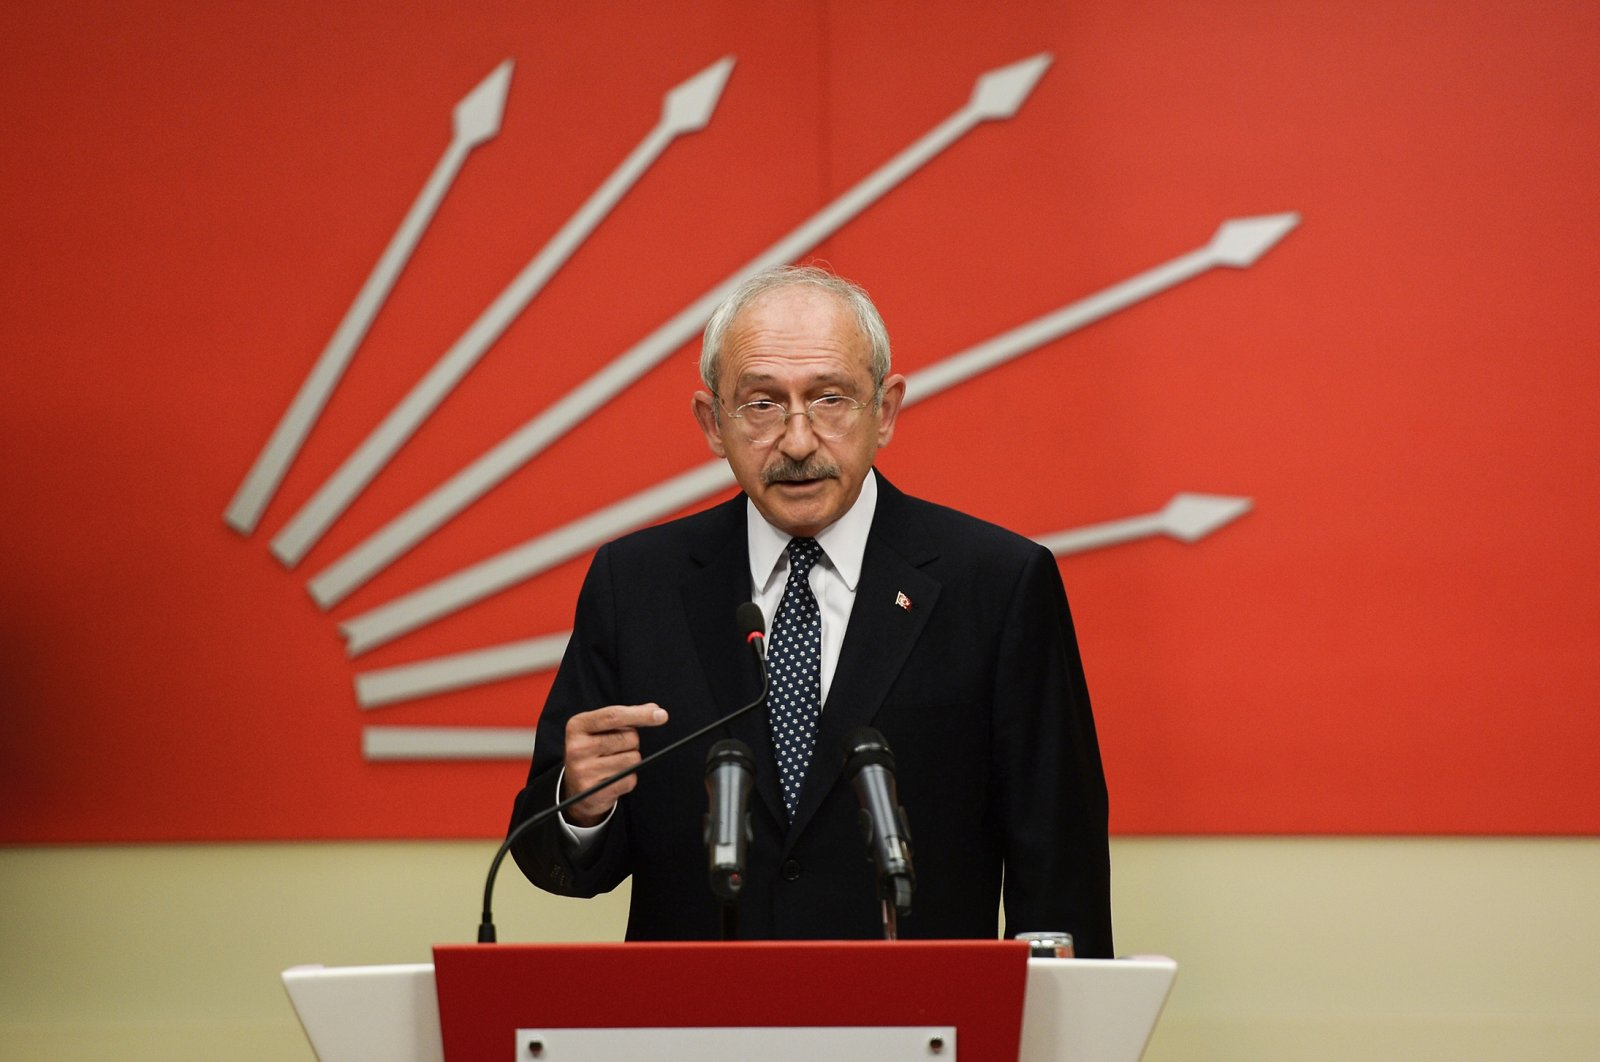 Turkey's main opposition Republican People's Party (CHP) chairperson Kemal Kılıçdaroğlu speaks during a news conference in Ankara, Turkey, on April 16, 2017. (Getty Images Photo)